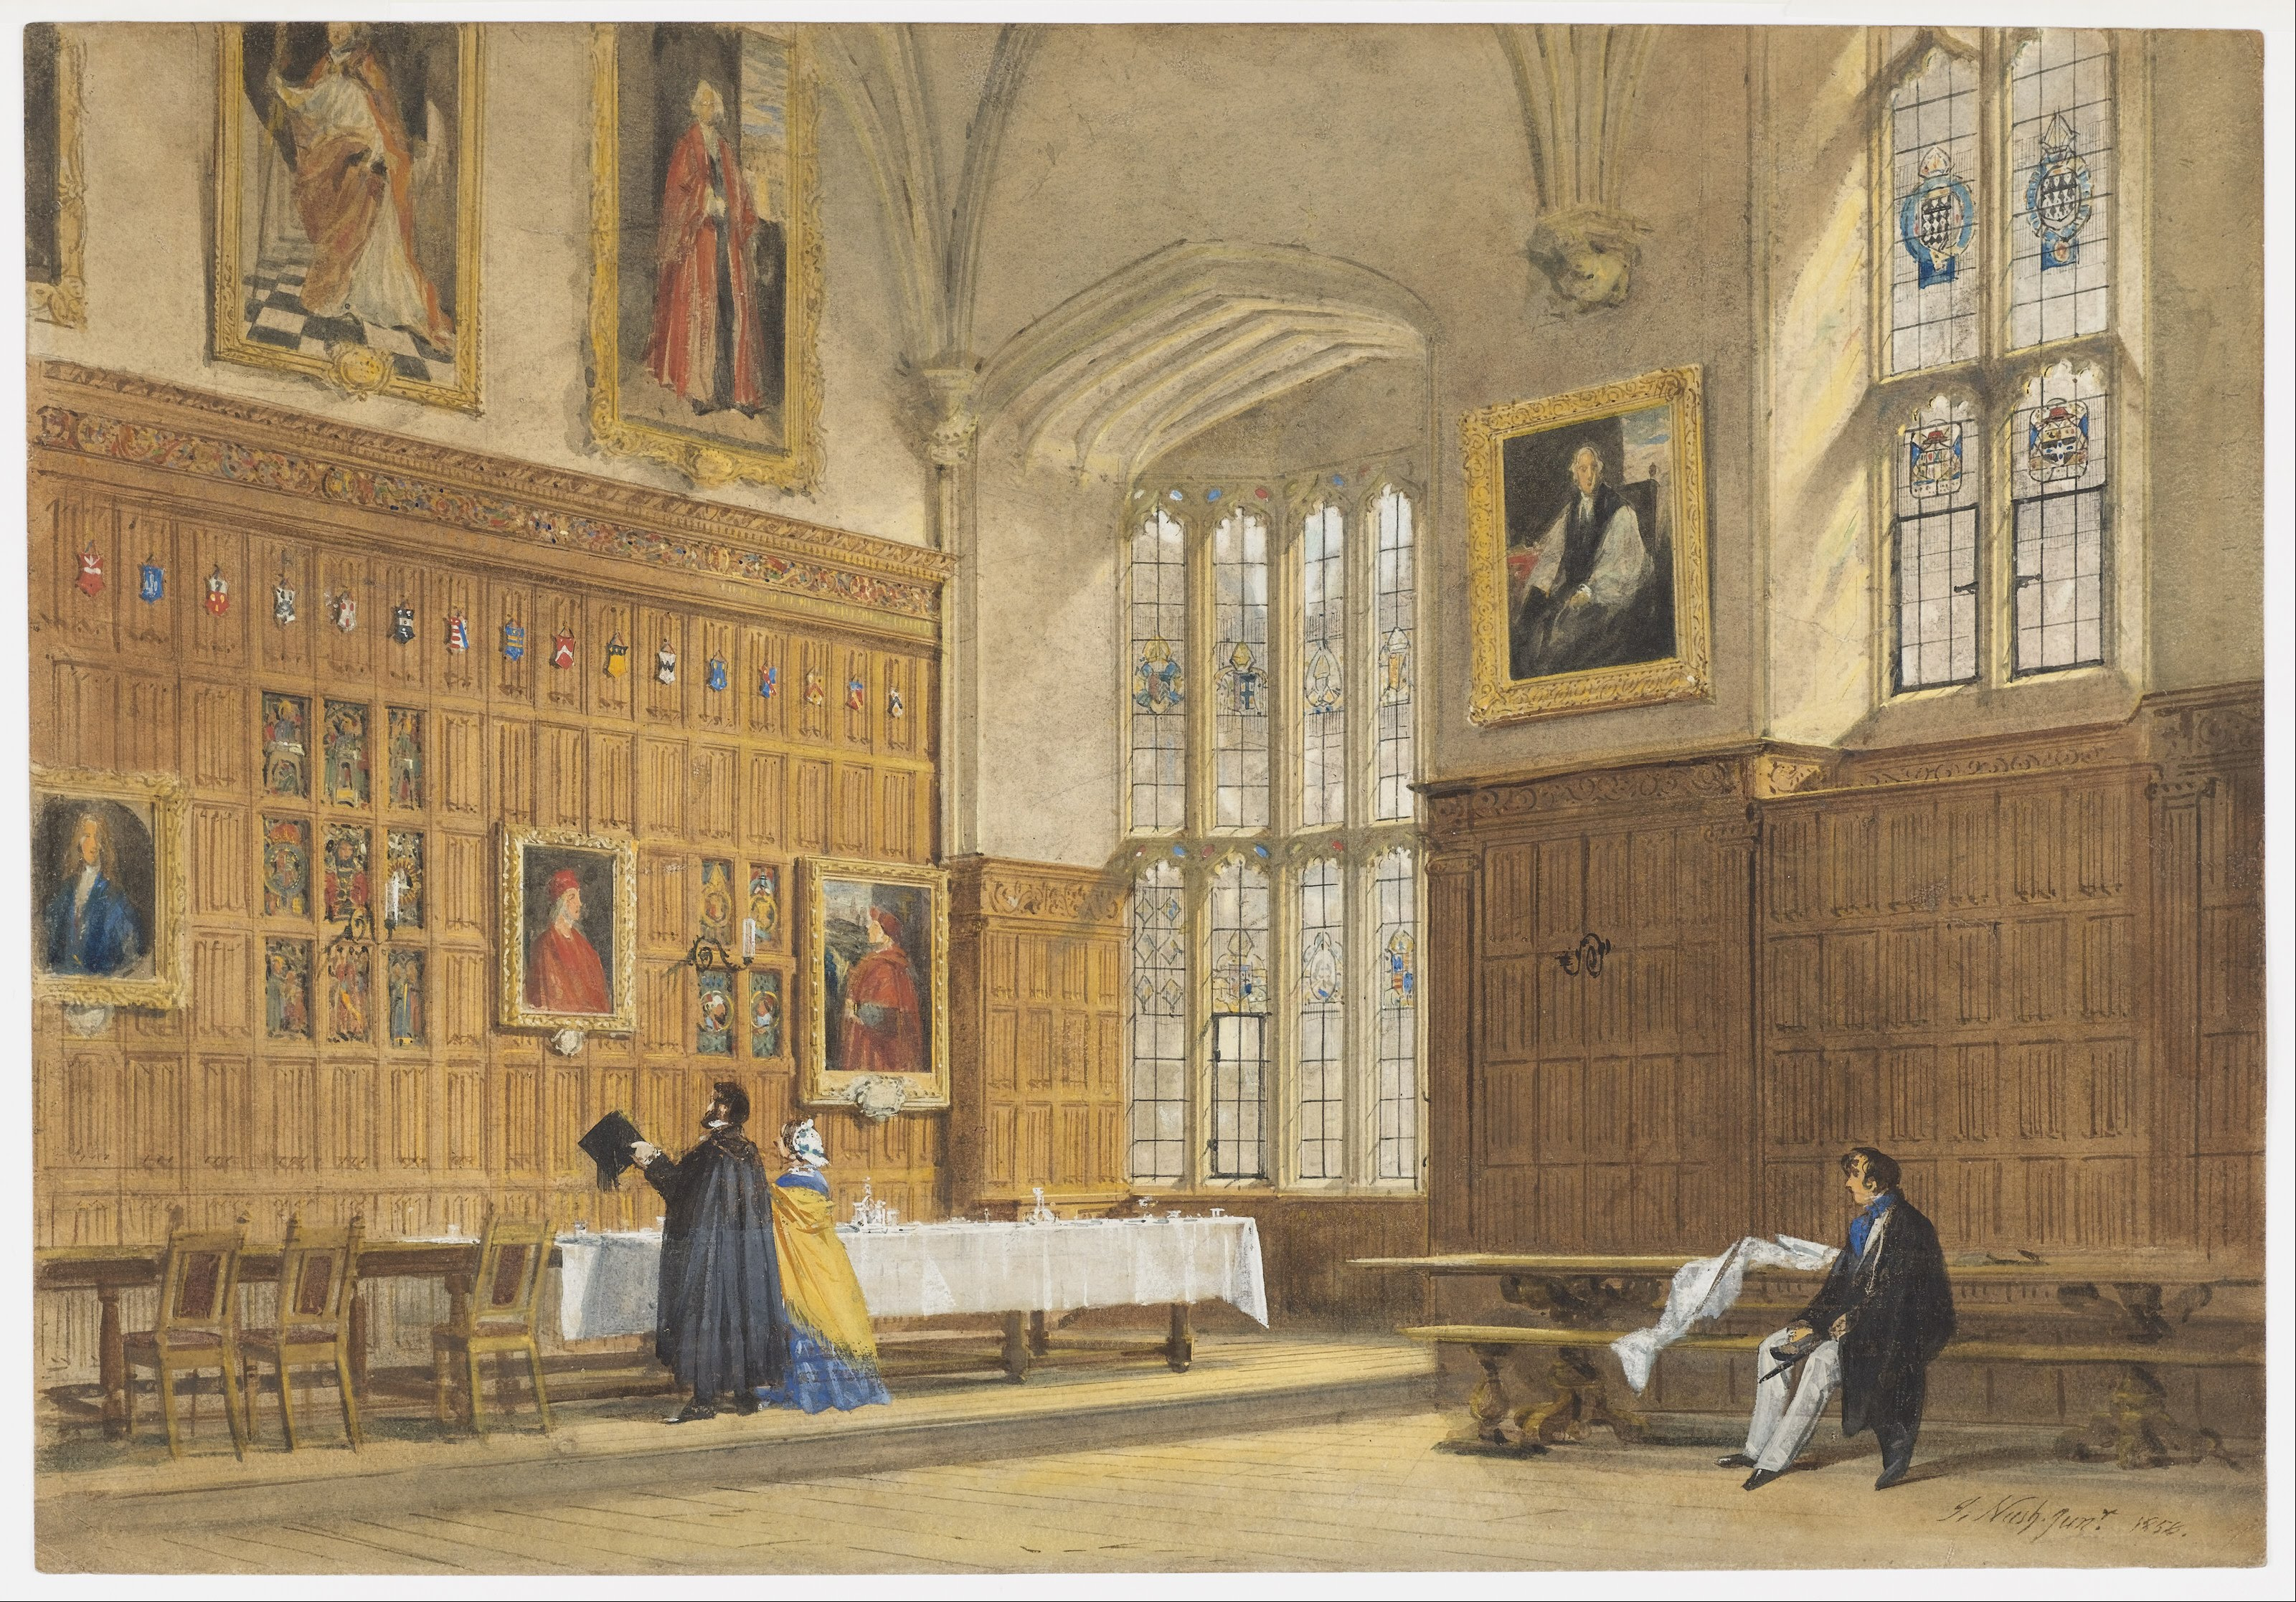 FileJoseph Nash The Elder  View of the Dining Hall in